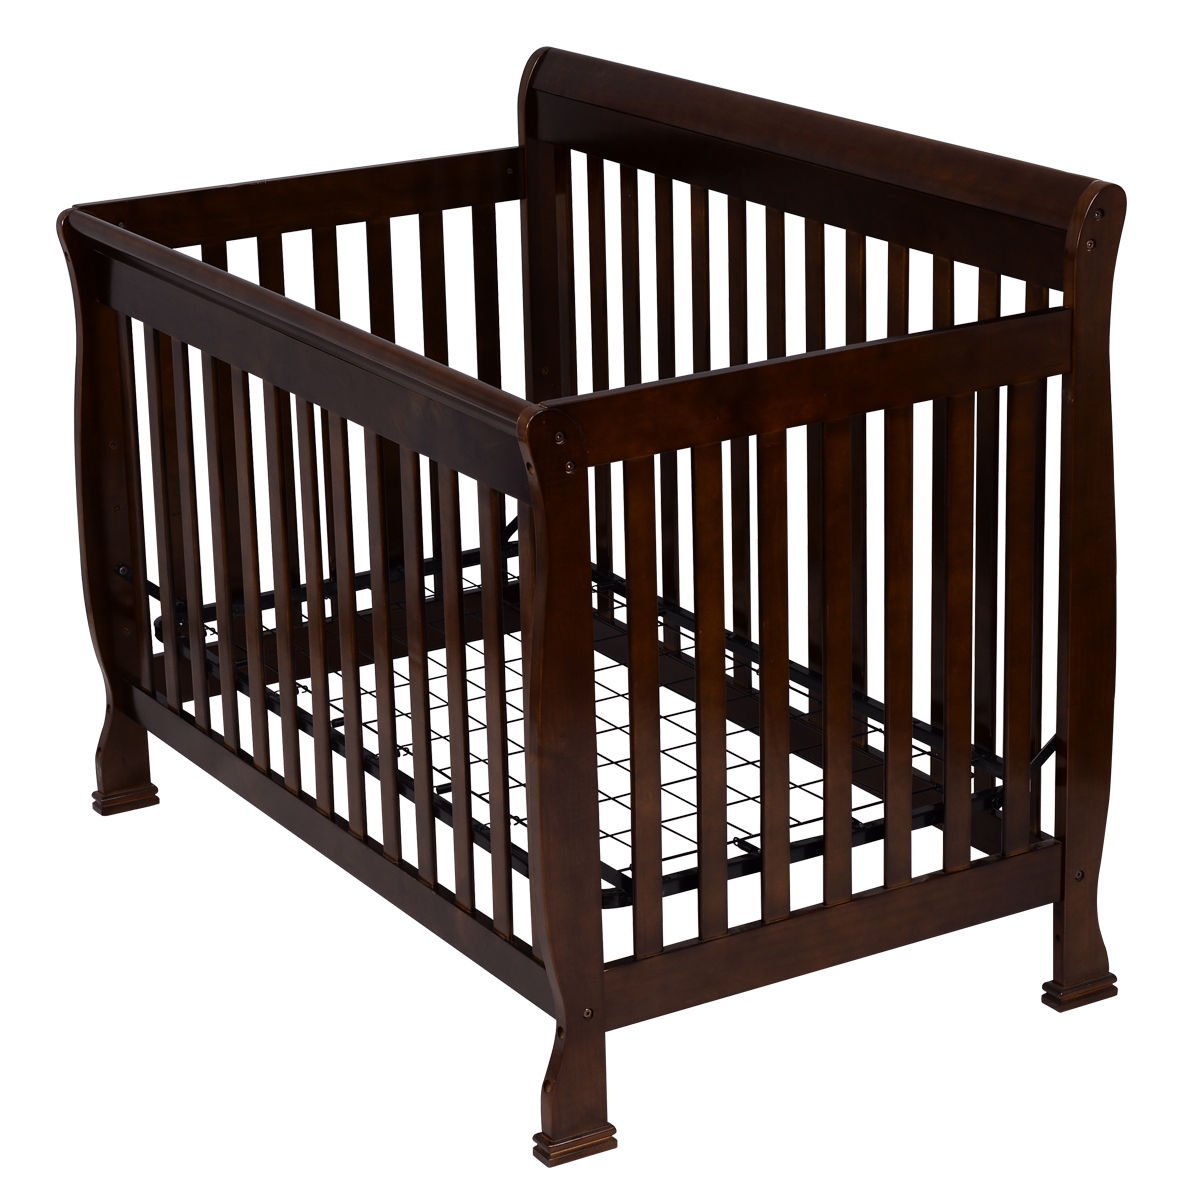 Coffee Pine Wood Baby Toddler Bed Convertible Crib Nursery Furniture Children by Happybeamy (Image #2)